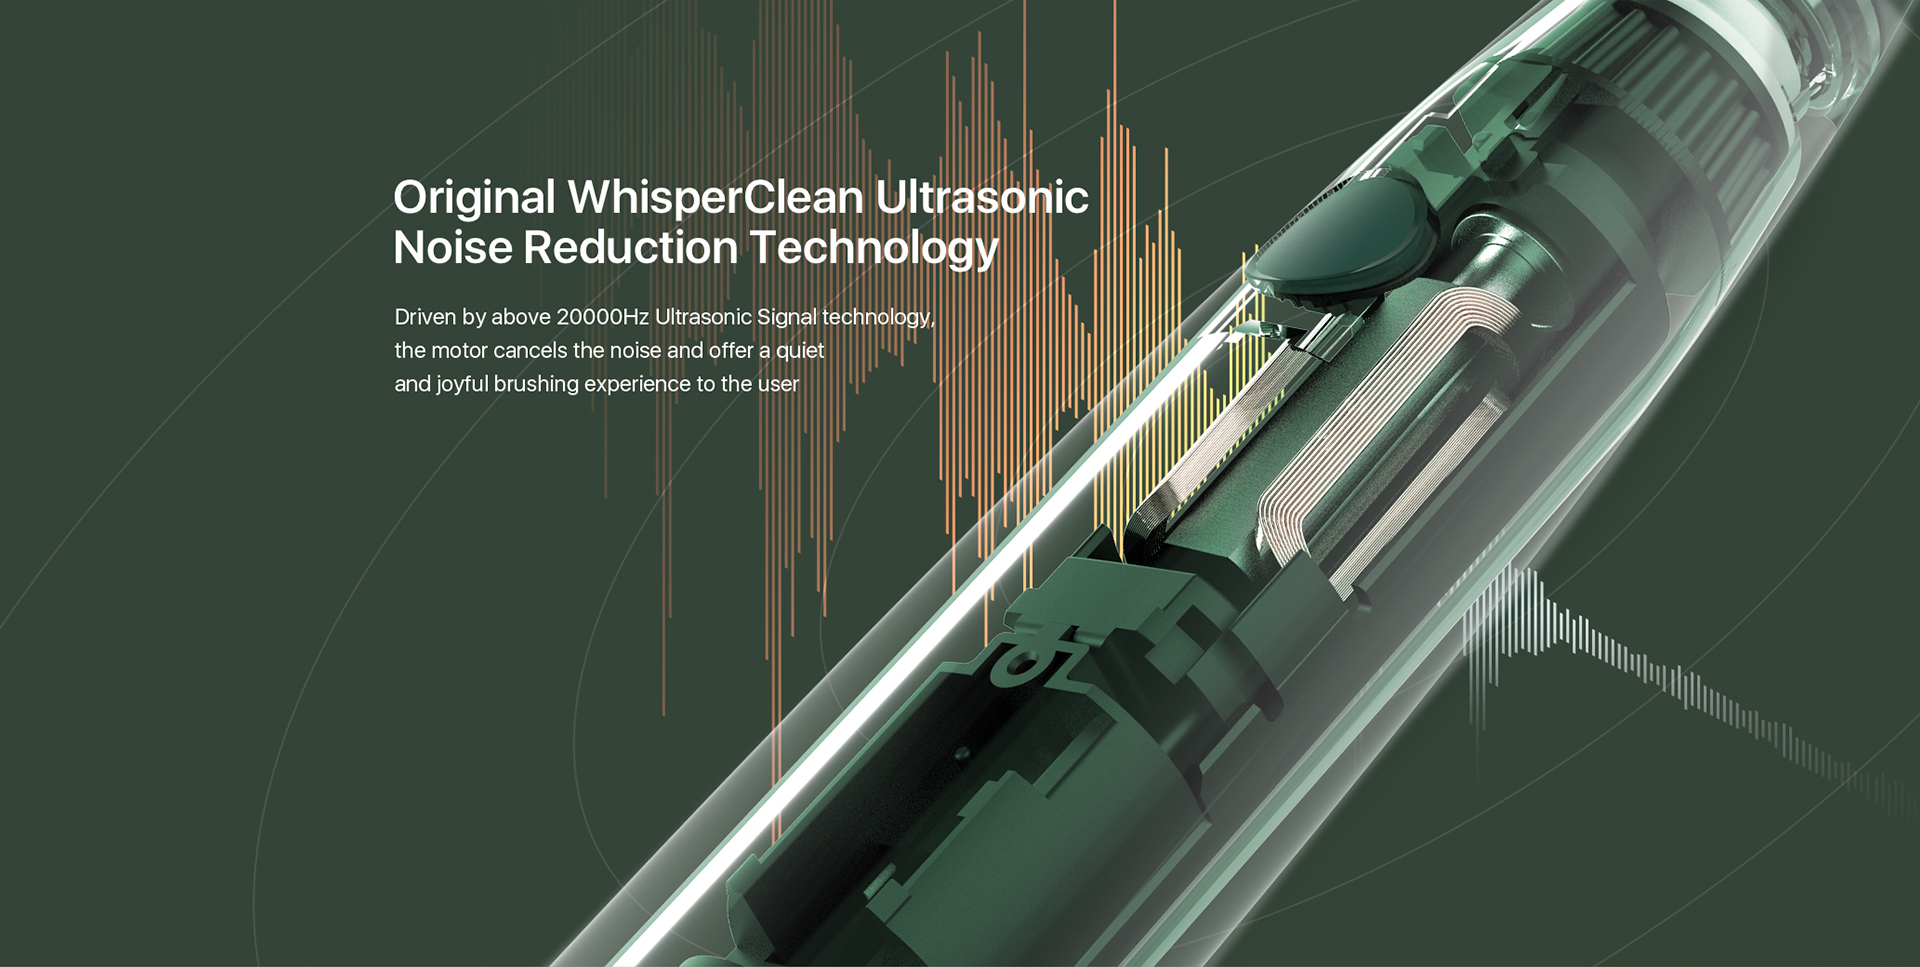 Origianl WhisperClean Ultrasonic Noise Reduction Technoloogy